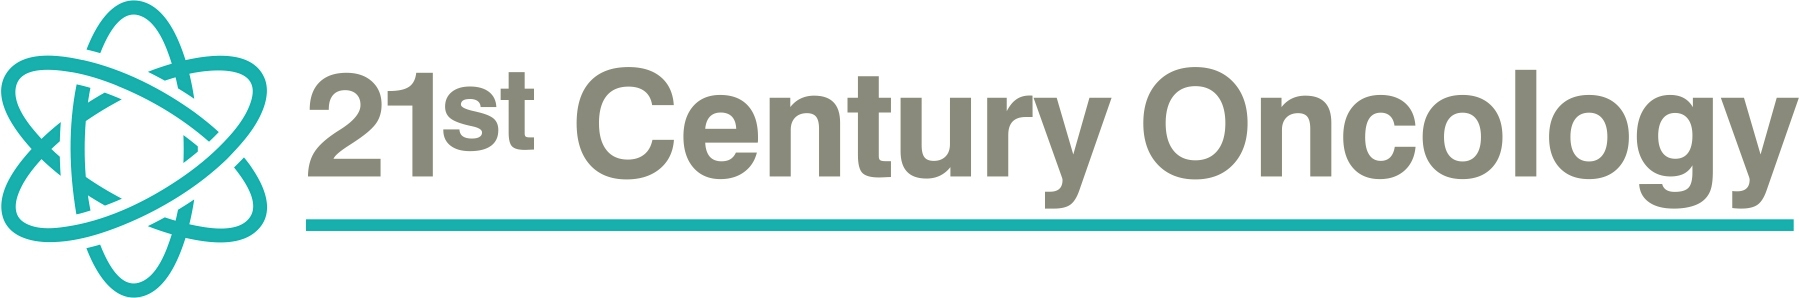 21st_century_oncology-logo